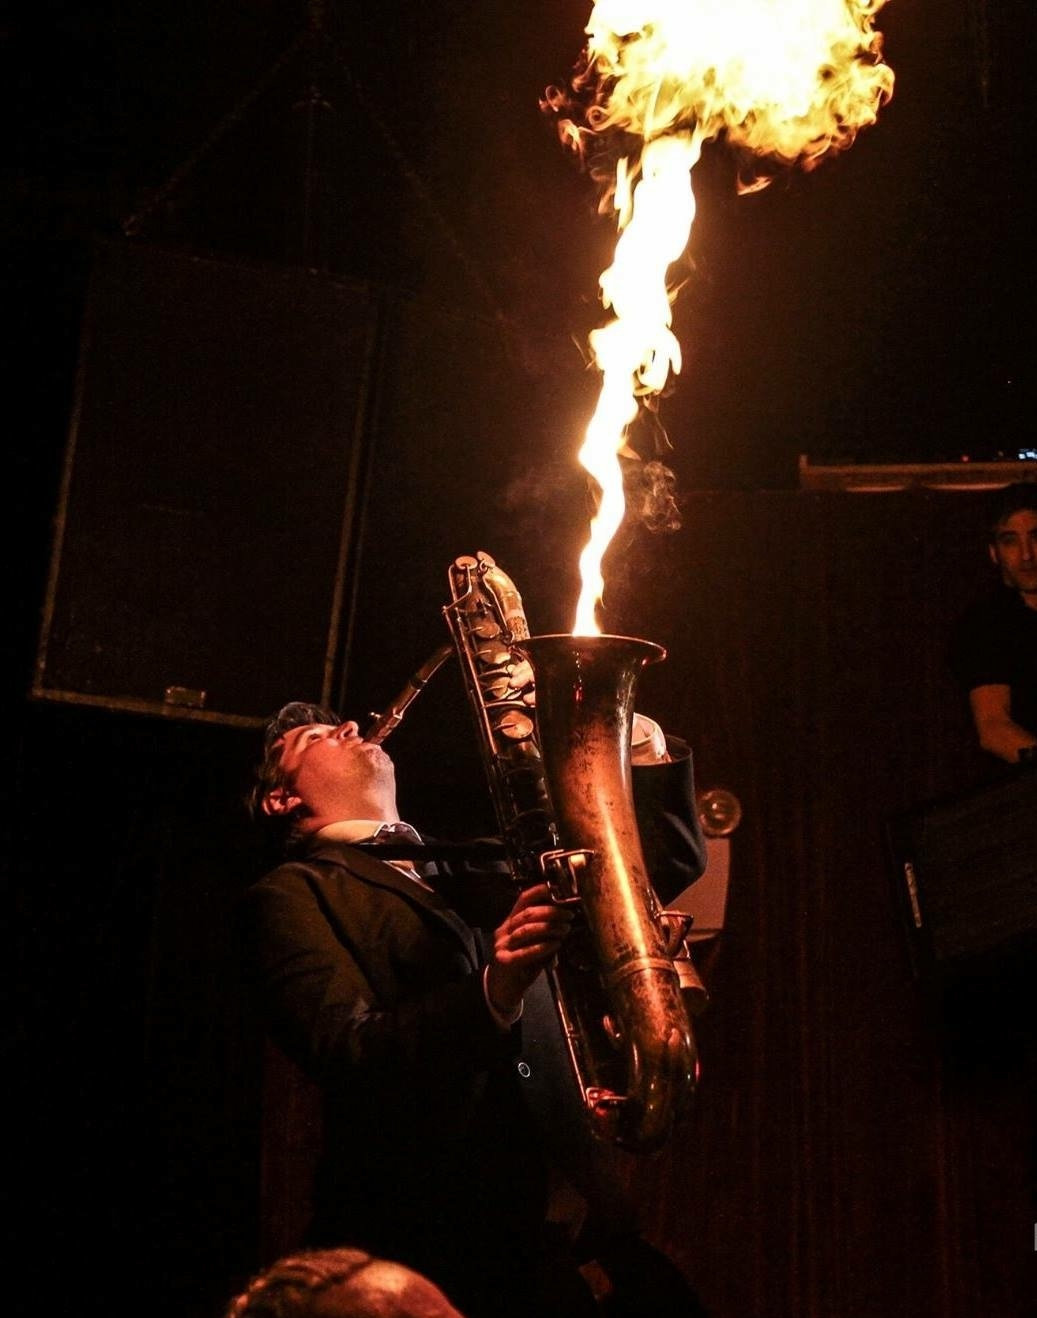 Fire Saxophone Player!